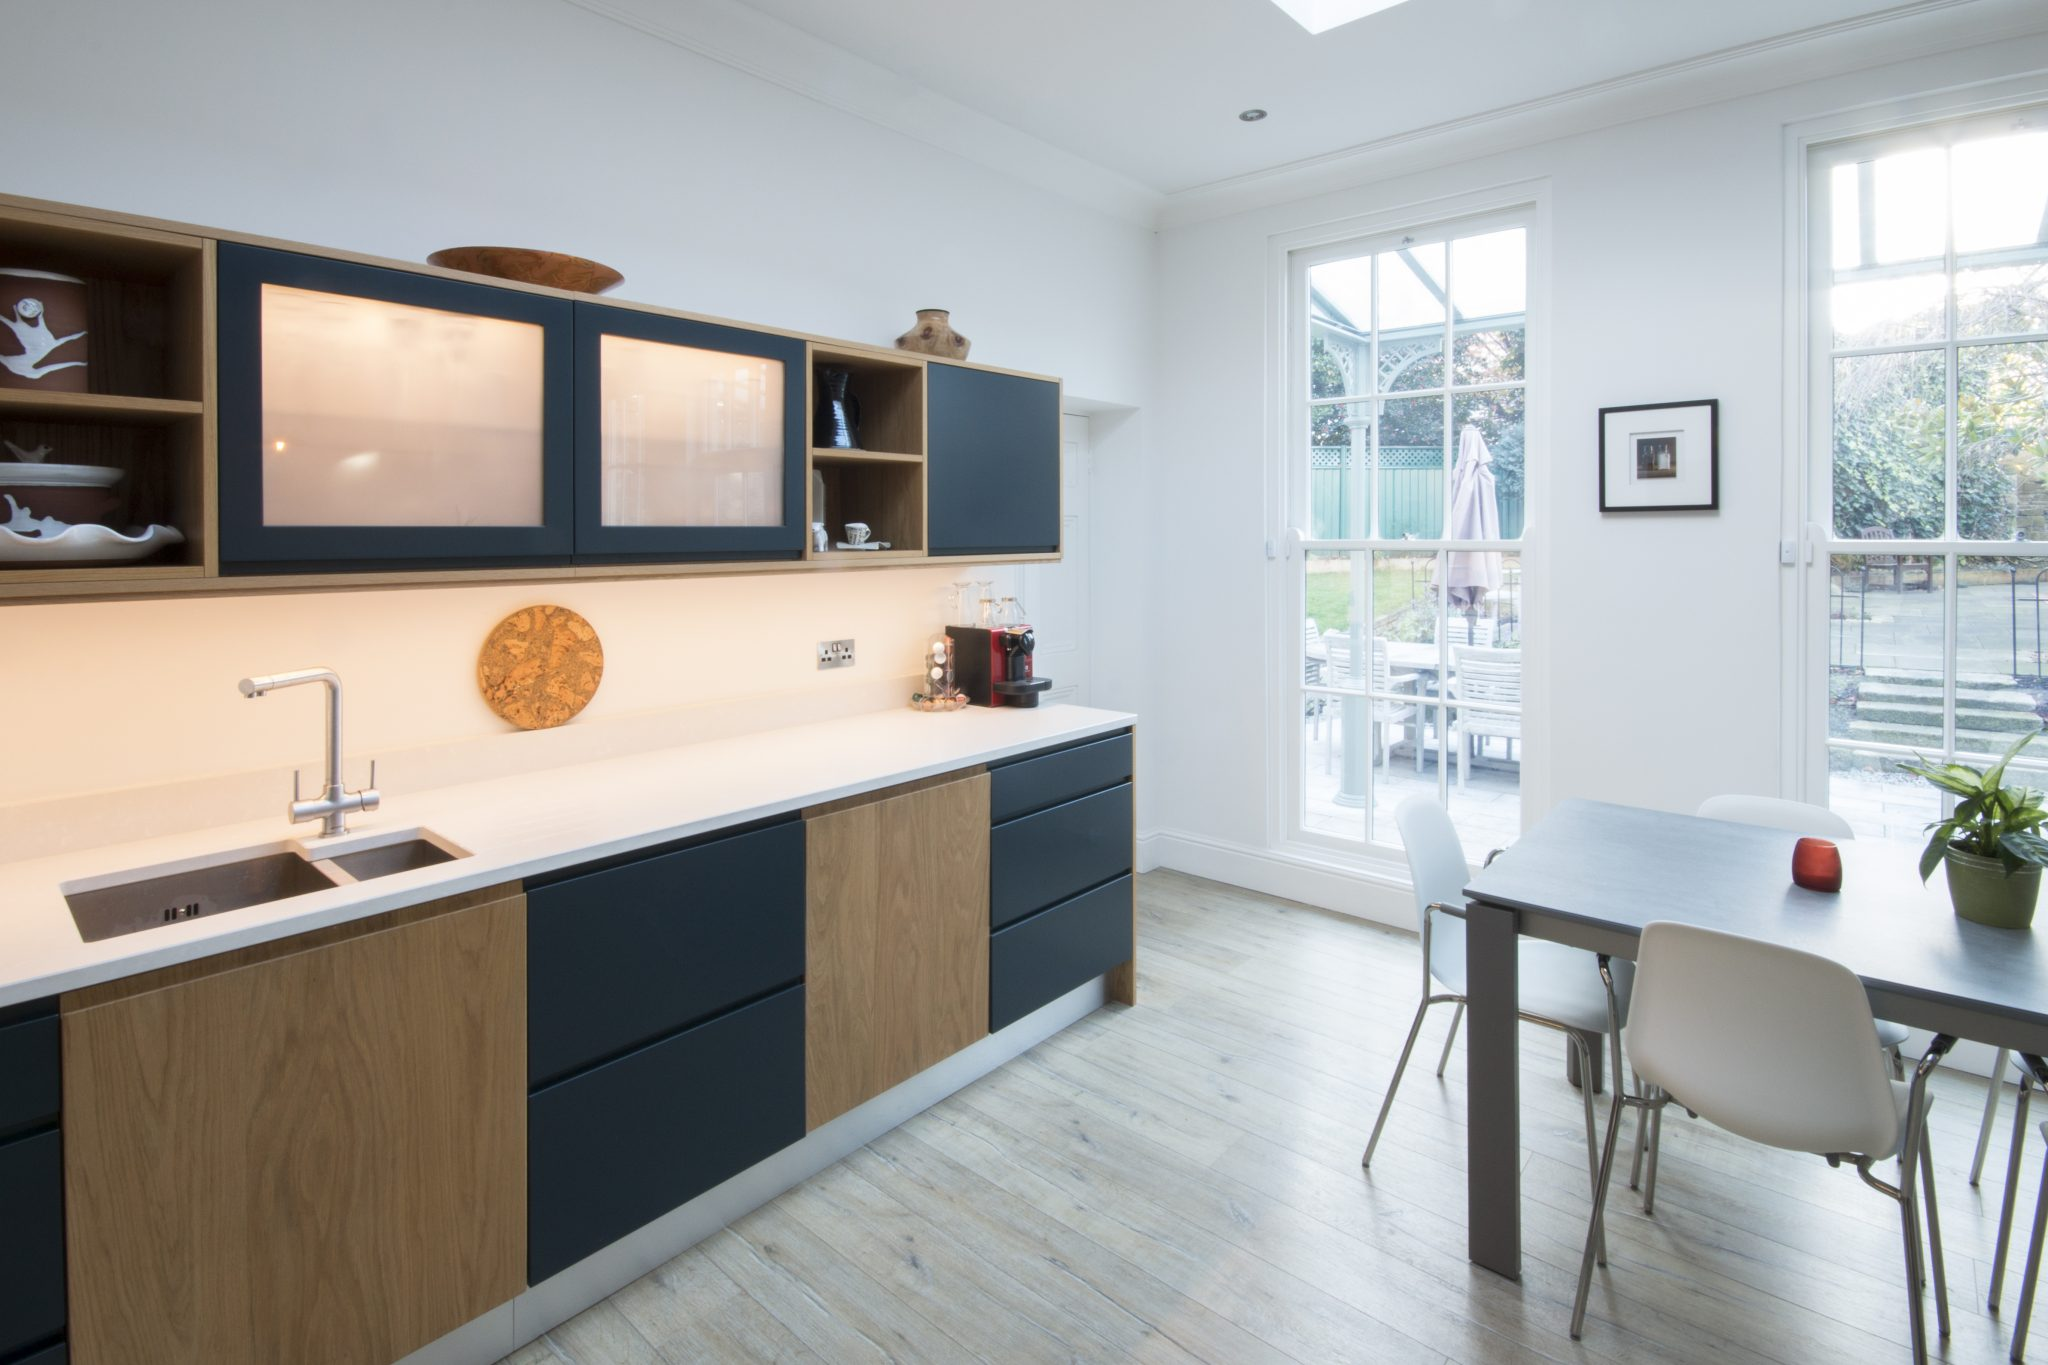 Enigma Design » enigma design bespoke cabinetry kitchen oak hague blue 8